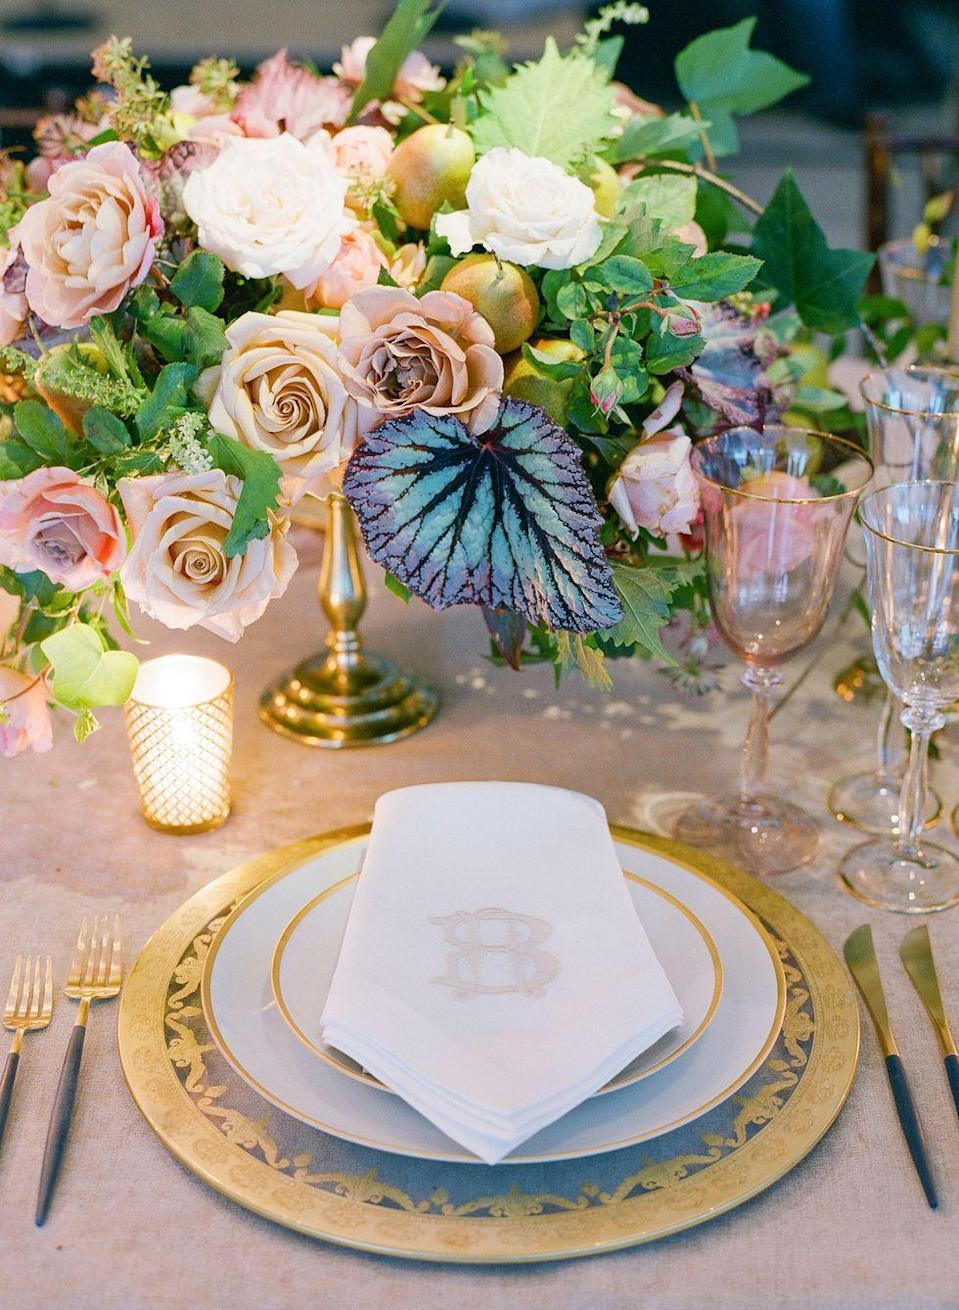 "<p>The subtlest hint of pink stemware plays nicely with blush linens and garden roses in this formal but unfussy tablescape. </p><p><a href=""https://www.harpersbazaar.com/wedding/photos/a23652644/rachel-king-brad-huff-wedding/"" rel=""nofollow noopener"" target=""_blank"" data-ylk=""slk:Via"" class=""link rapid-noclick-resp"">Via </a><em><a href=""https://www.harpersbazaar.com/wedding/photos/a23652644/rachel-king-brad-huff-wedding/"" rel=""nofollow noopener"" target=""_blank"" data-ylk=""slk:Harper's Bazaar"" class=""link rapid-noclick-resp"">Harper's Bazaar </a></em></p><p><a class=""link rapid-noclick-resp"" href=""https://go.redirectingat.com?id=74968X1596630&url=https%3A%2F%2Fwww.wayfair.com%2Fkitchen-tabletop%2Fpdp%2Fgodinger-silver-art-co-twill-6-oz-crystal-goblet-rxk10085.html%3Fpiid%3D35558046&sref=https%3A%2F%2Fwww.elledecor.com%2Flife-culture%2Ffun-at-home%2Fg2387%2Fvalentines-day-decor%2F"" rel=""nofollow noopener"" target=""_blank"" data-ylk=""slk:GET THE LOOK"">GET THE LOOK</a><em><br>Pink Crystal Goblet, Wayfair, $22.99</em></p>"